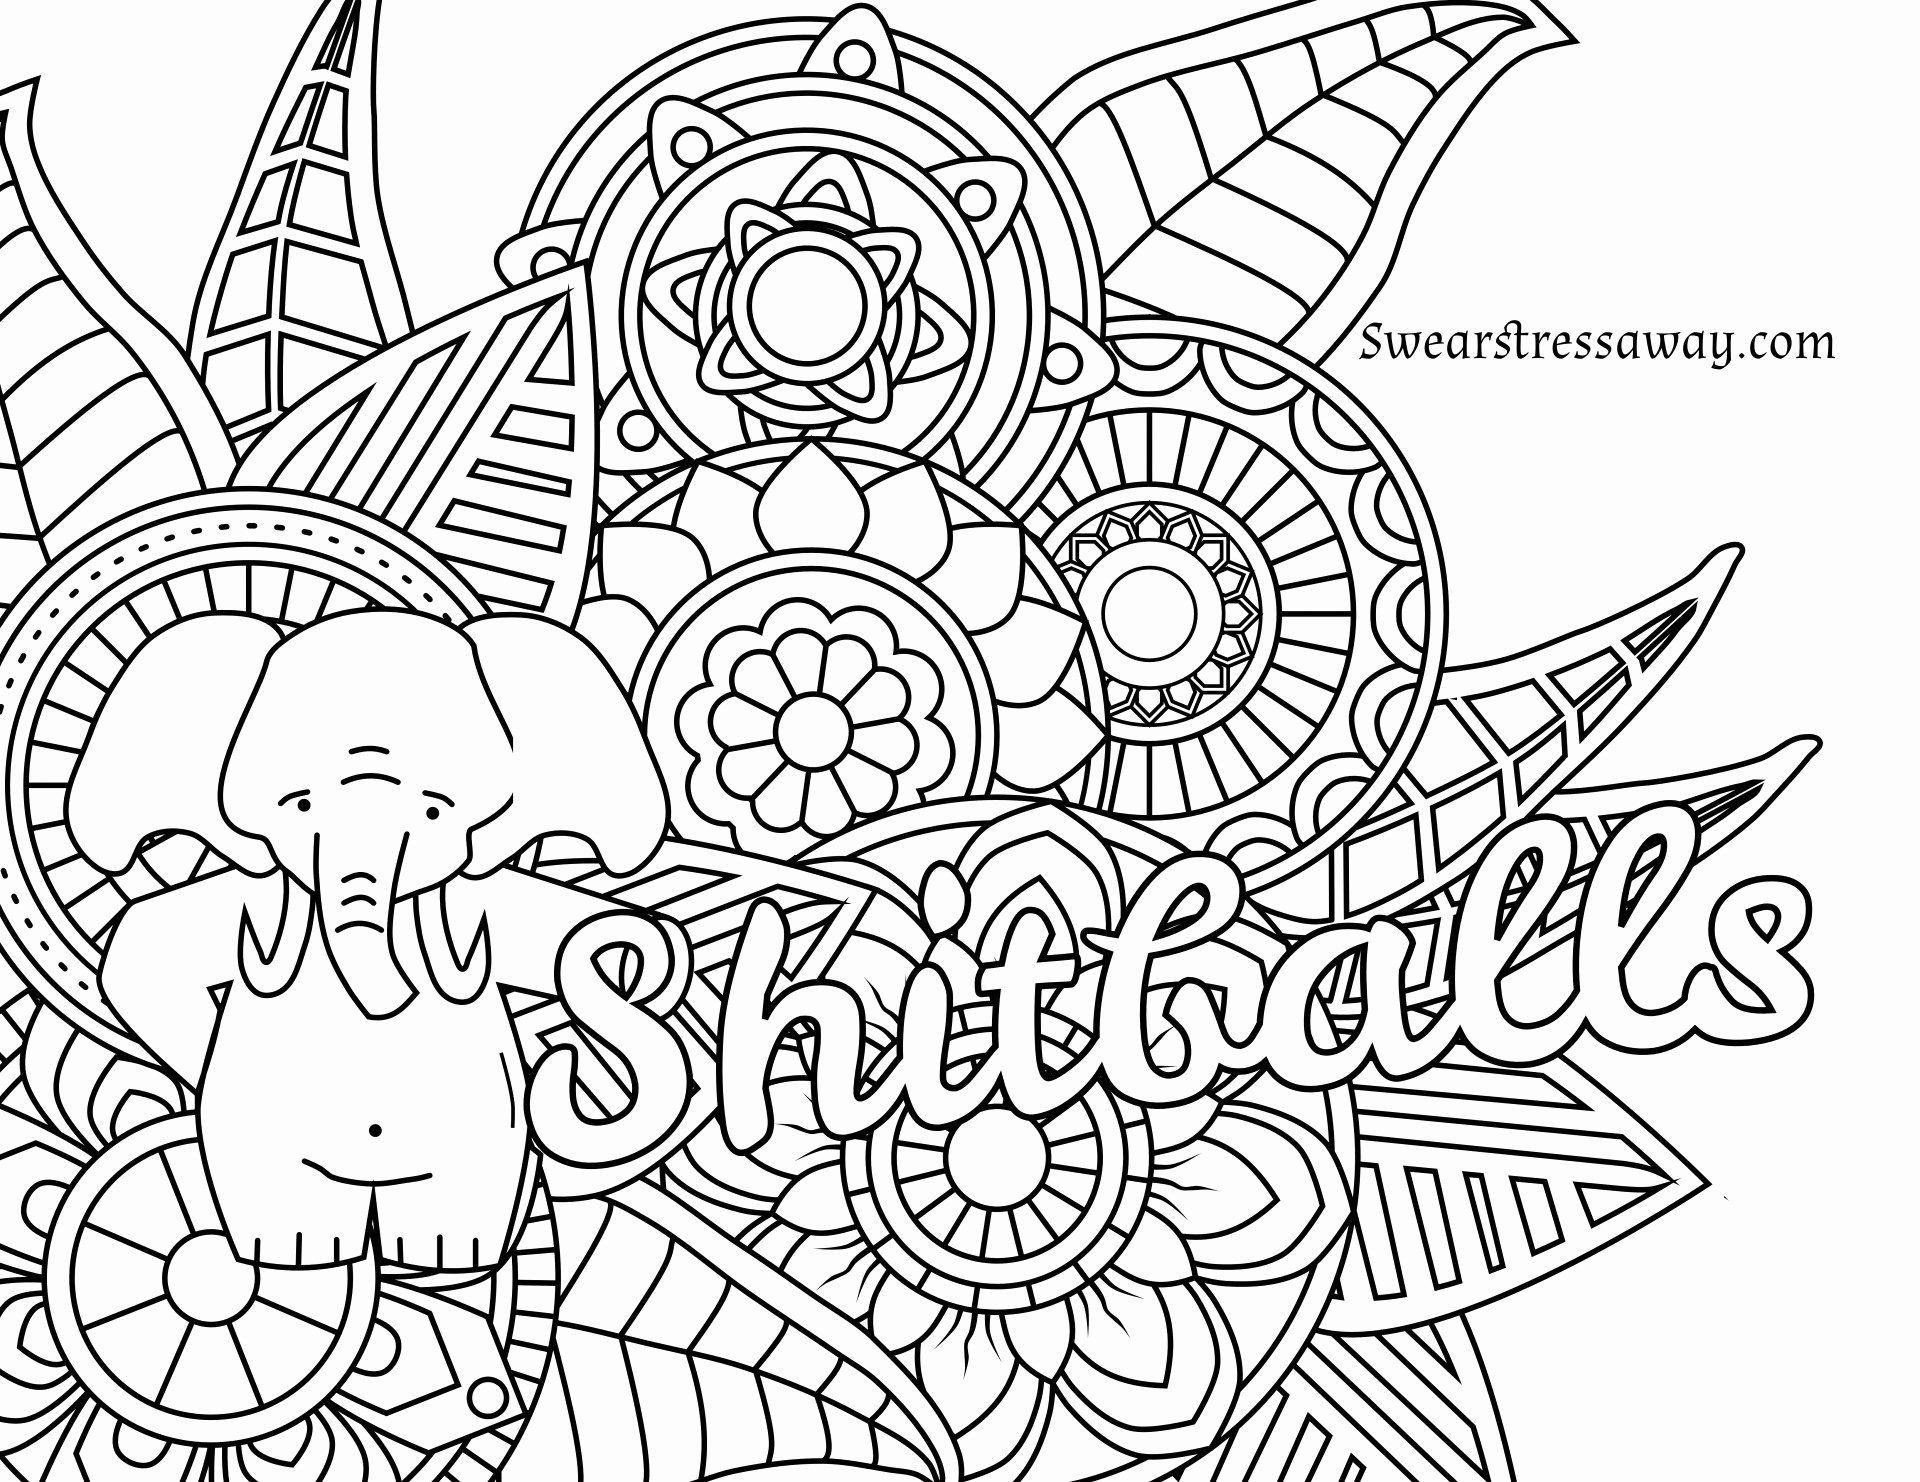 Narwhal Coloring Pages Ginormasource Kids Unicorn Coloring Pages Whale Coloring Pages Coloring Pages